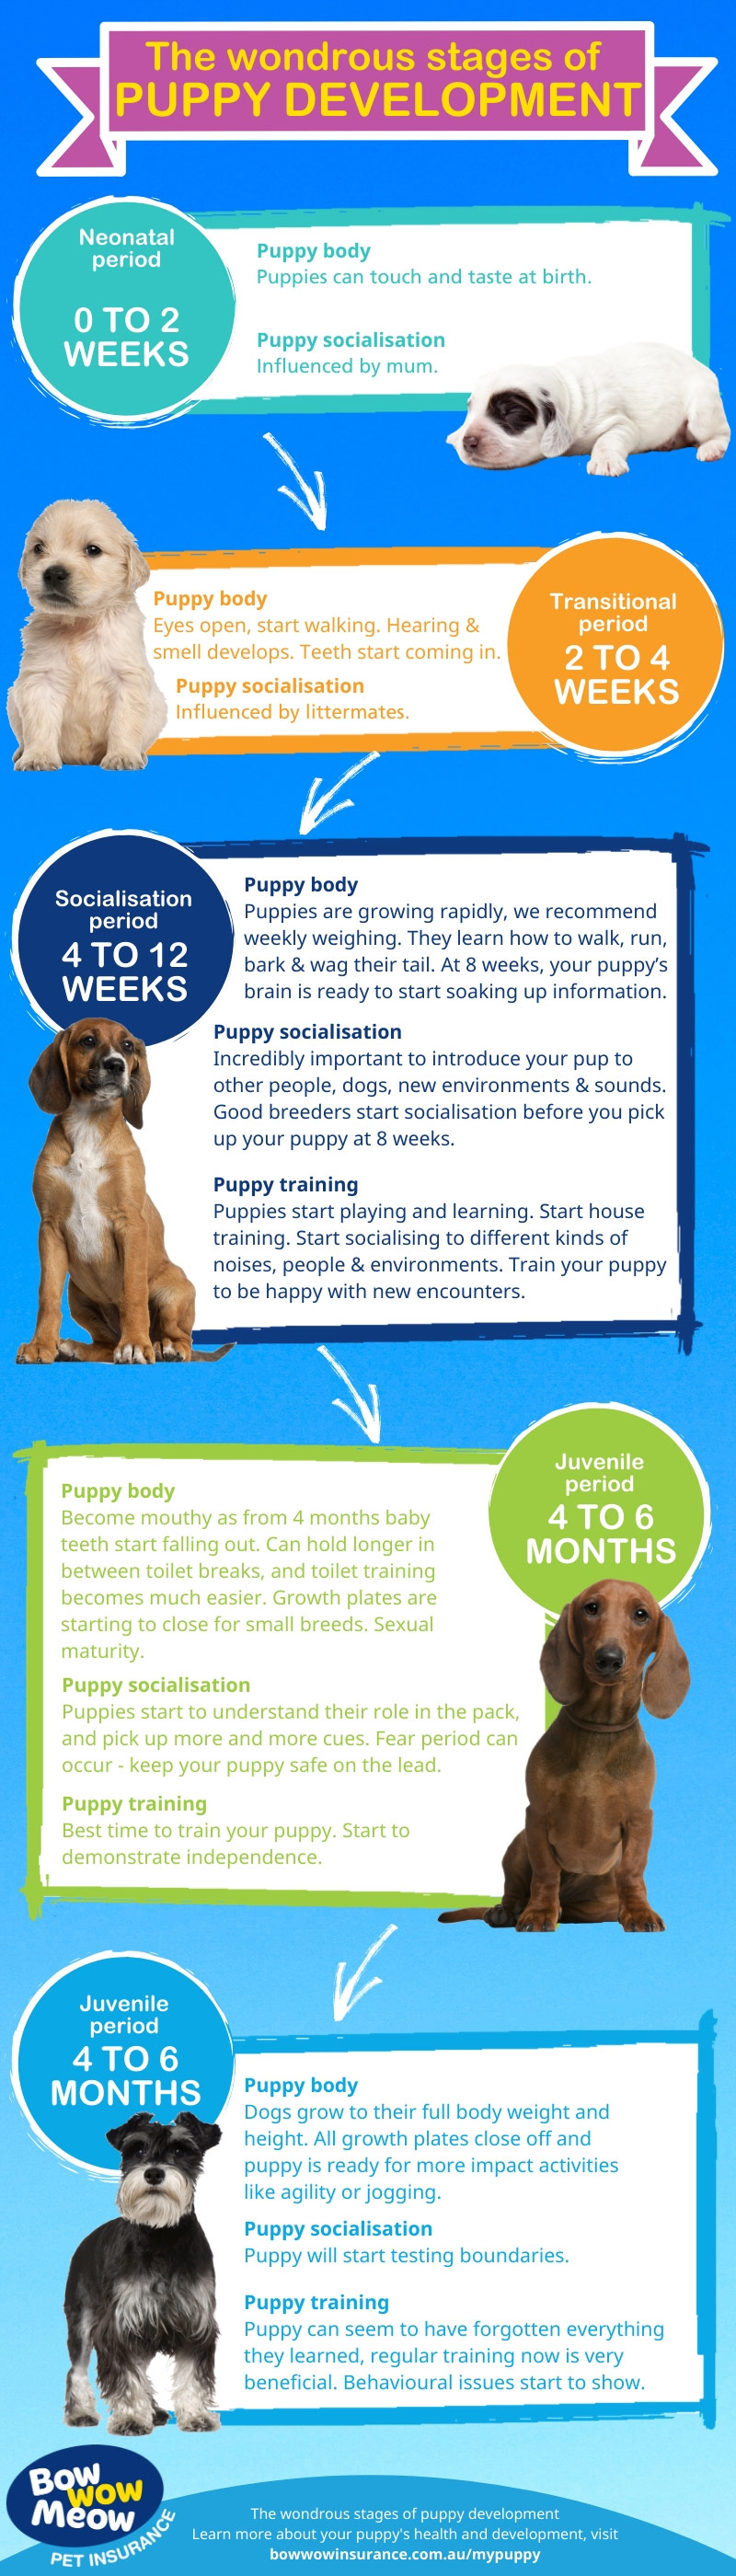 Puppy Development Stages Newborn Milestones Growth Charts